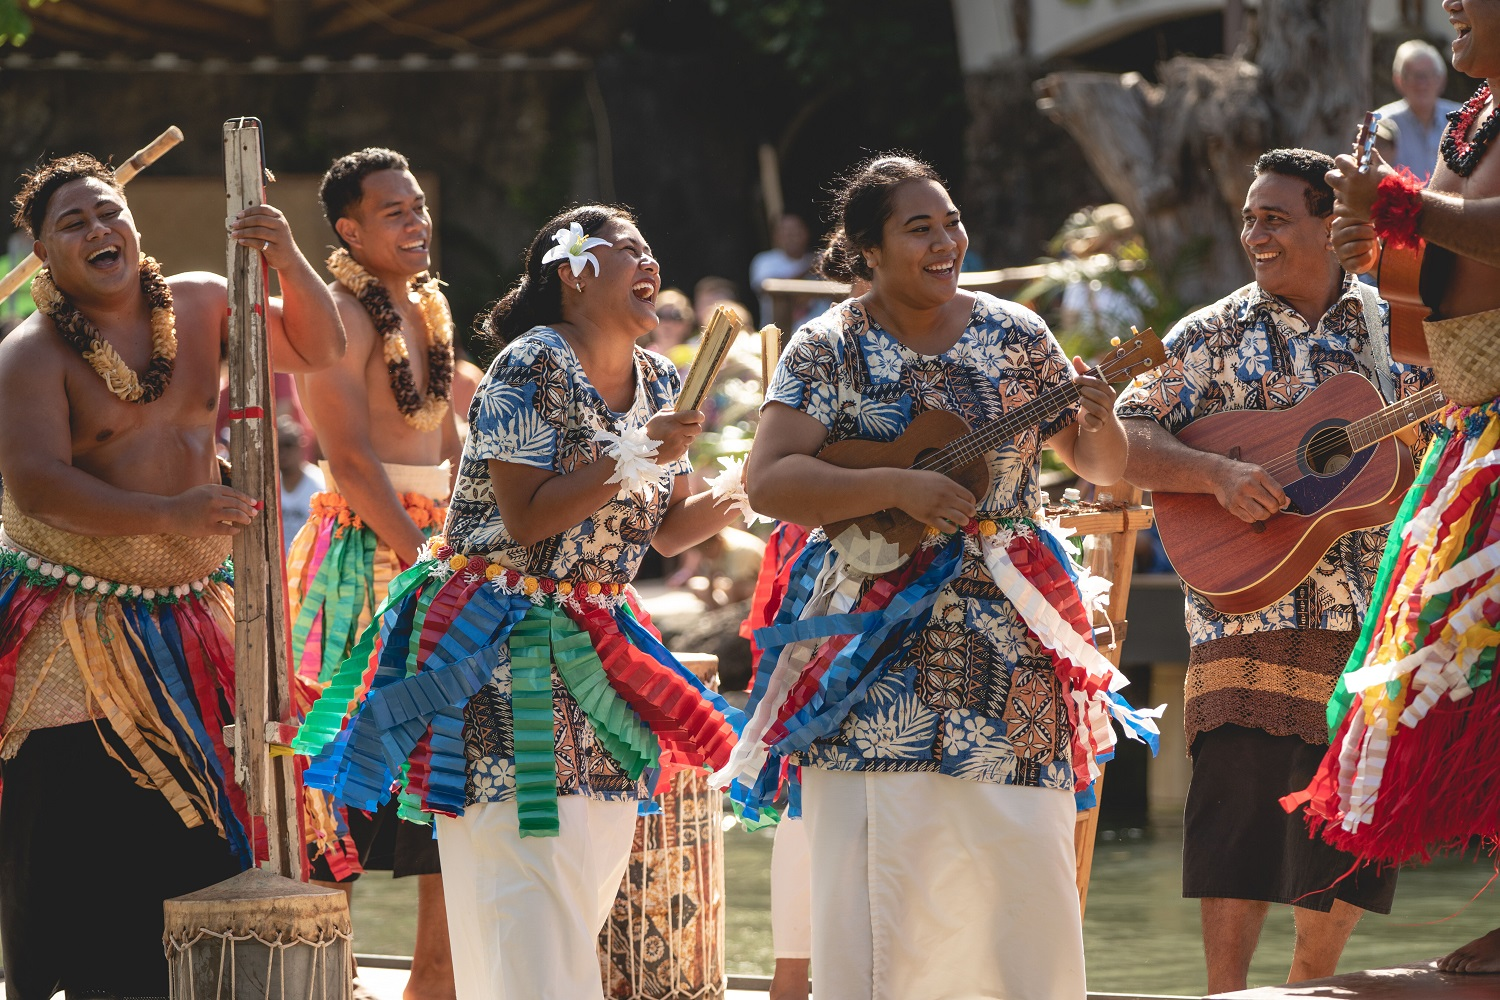 Working at the Polynesian Cultural Center